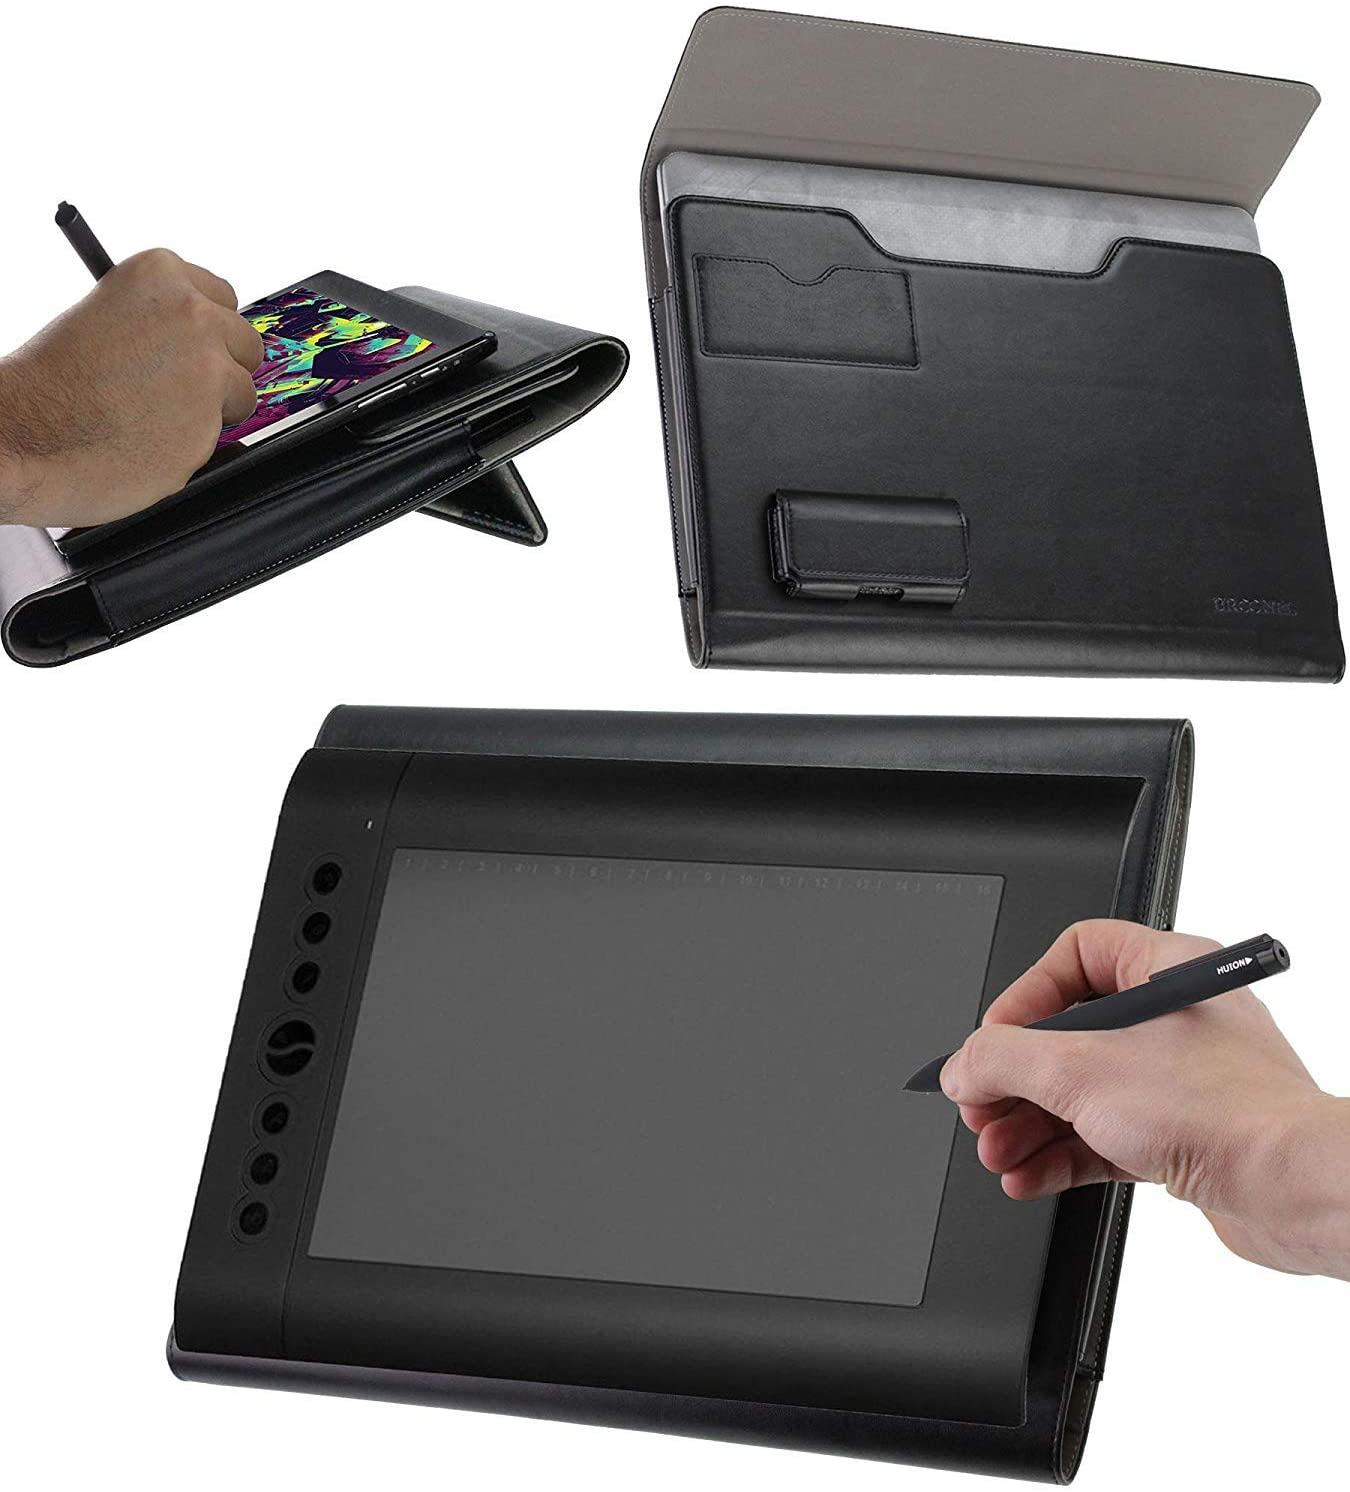 Broonel Luxury Leather Graphics Tablet Case with Built-in Ergonomic Stand Compatible with The HUION H610 Pro Graphic Drawing Tablet